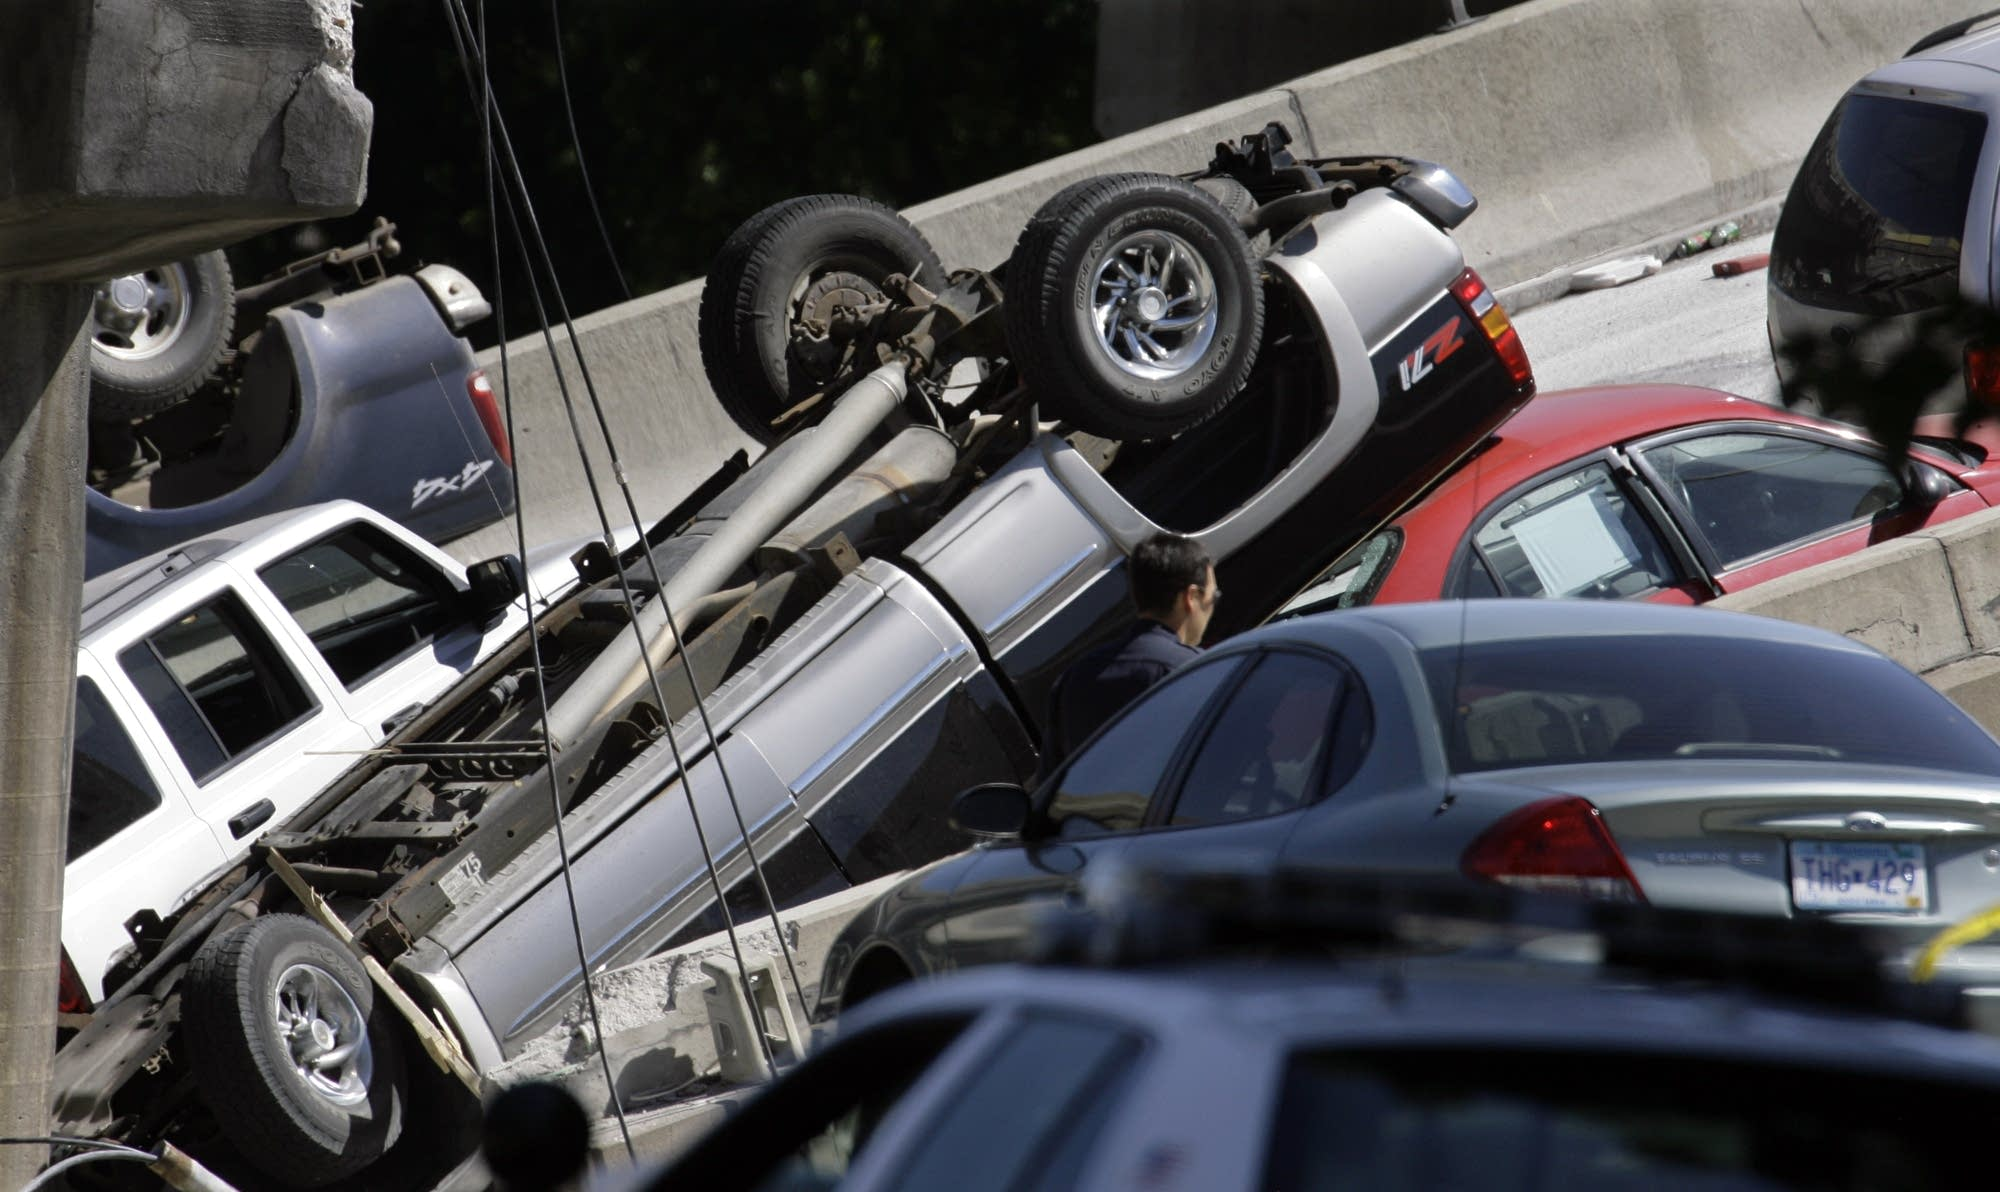 An inspector examines cars piled together at the base of the bridge.